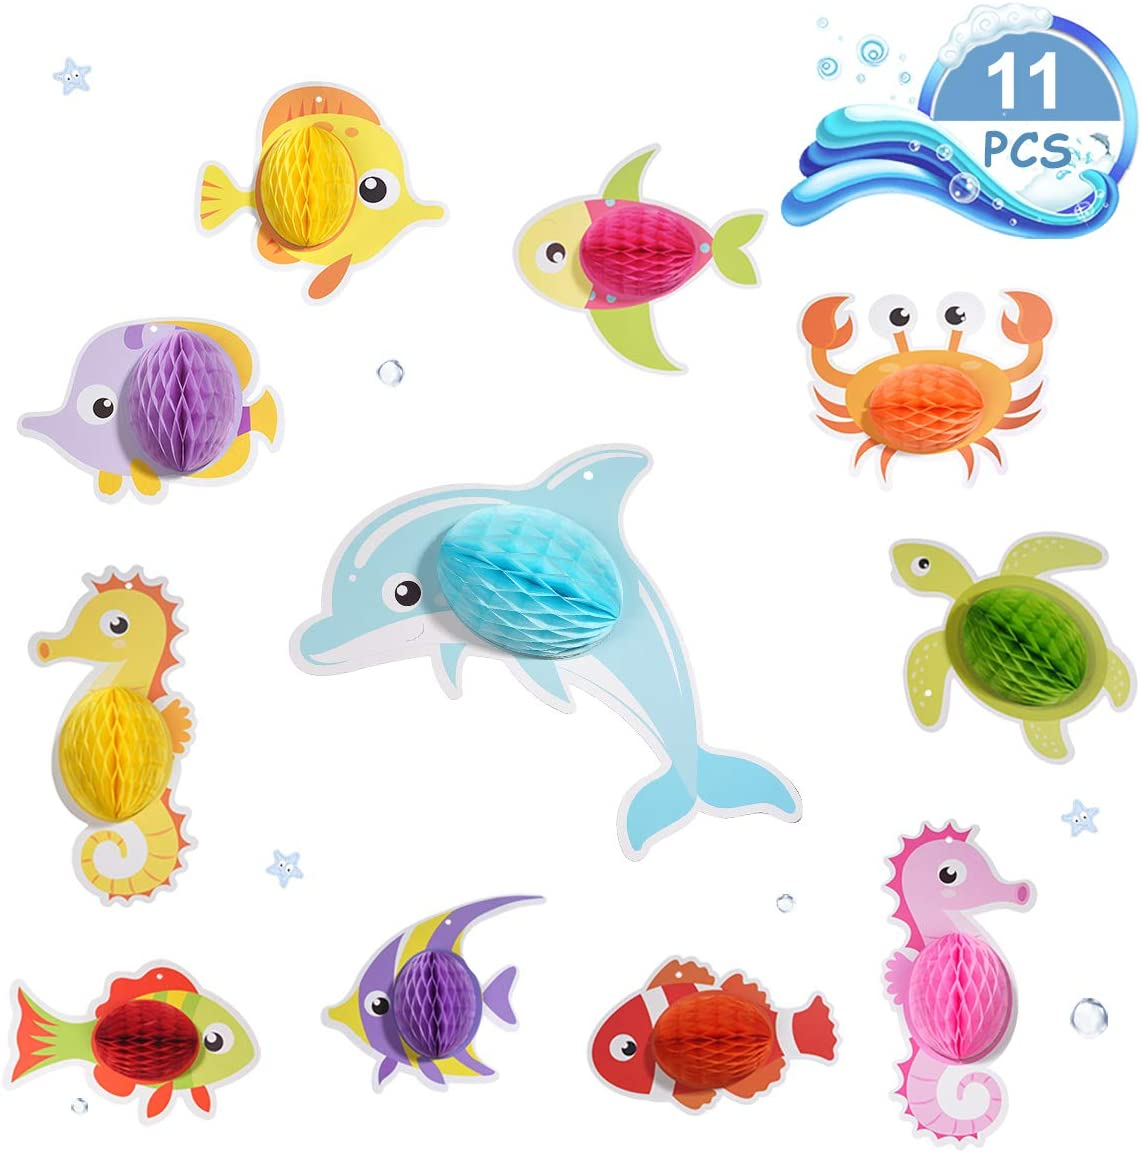 Photo Booth Props Hanging Decor for Birthday Party Decoration BUTABY 11pcs Ocean Animal Party Favors Party Supplies for Kids